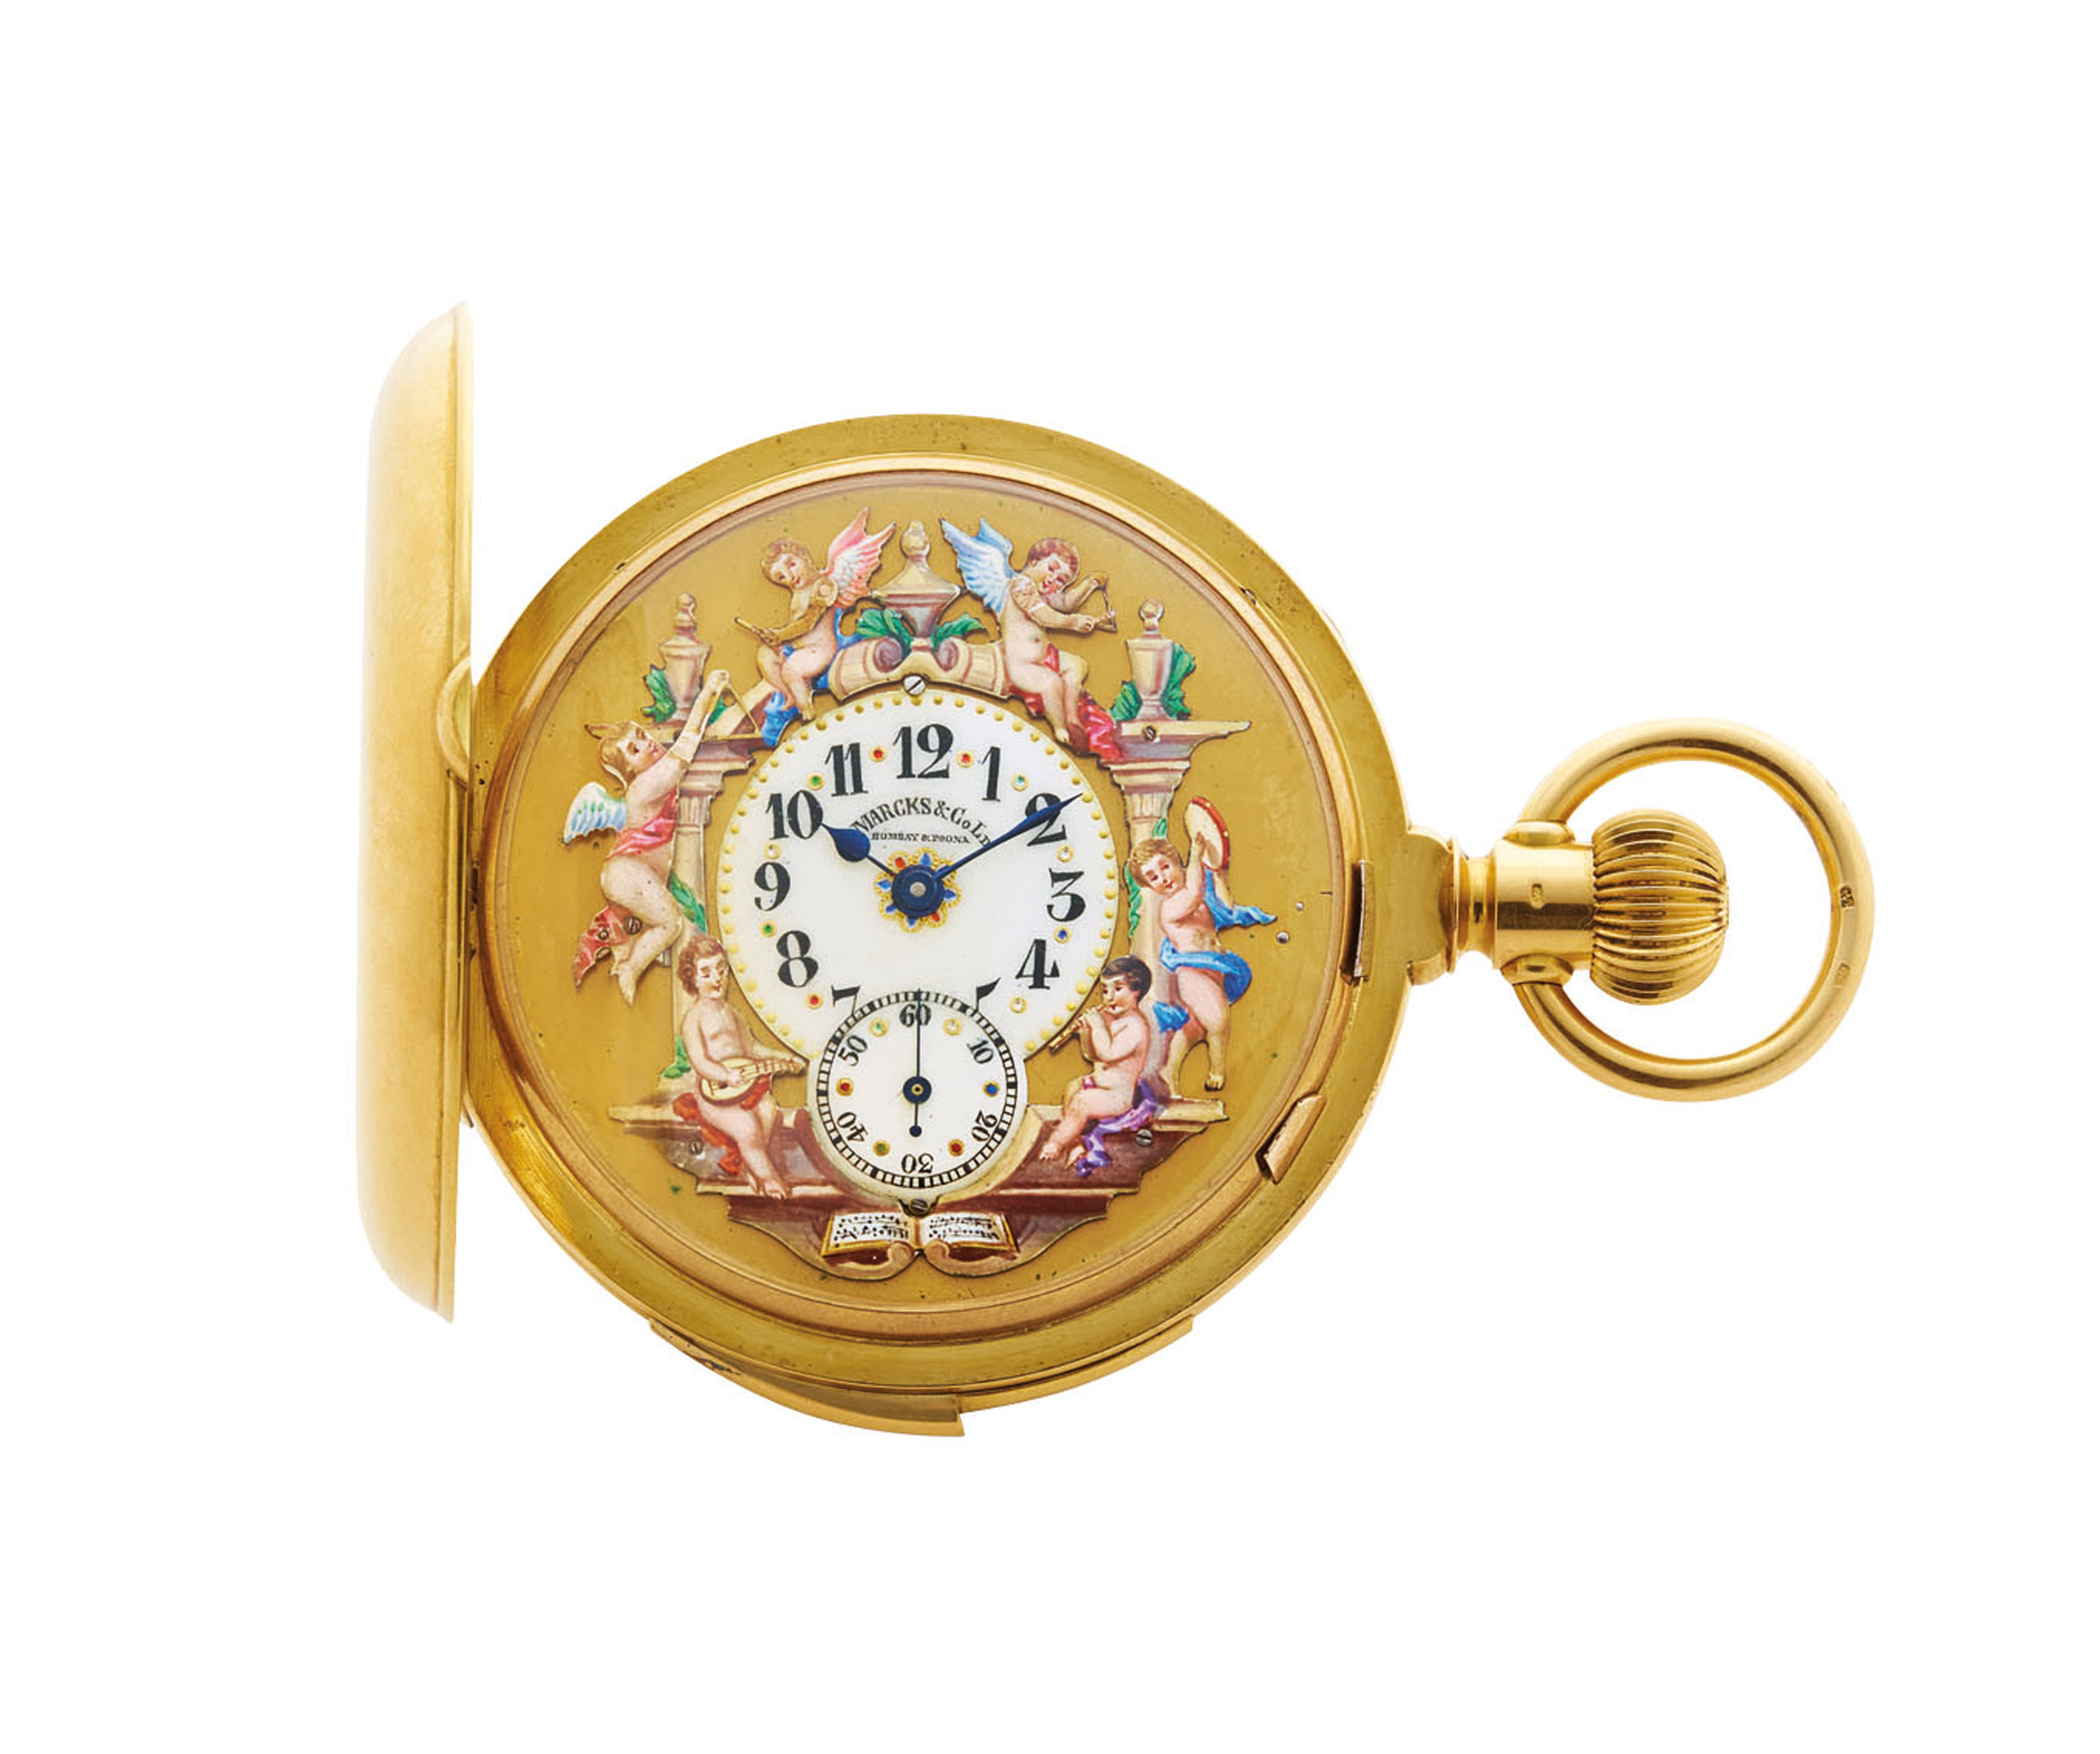 MARCKS & CO./LECOULTRE. A FINE, RARE AND ATTRACTIVE 18K GOLD AND ENAMEL HUNTER CASE MINUTE REPEATING THREE AUTOMATON KEYLESS LEVER WATCH